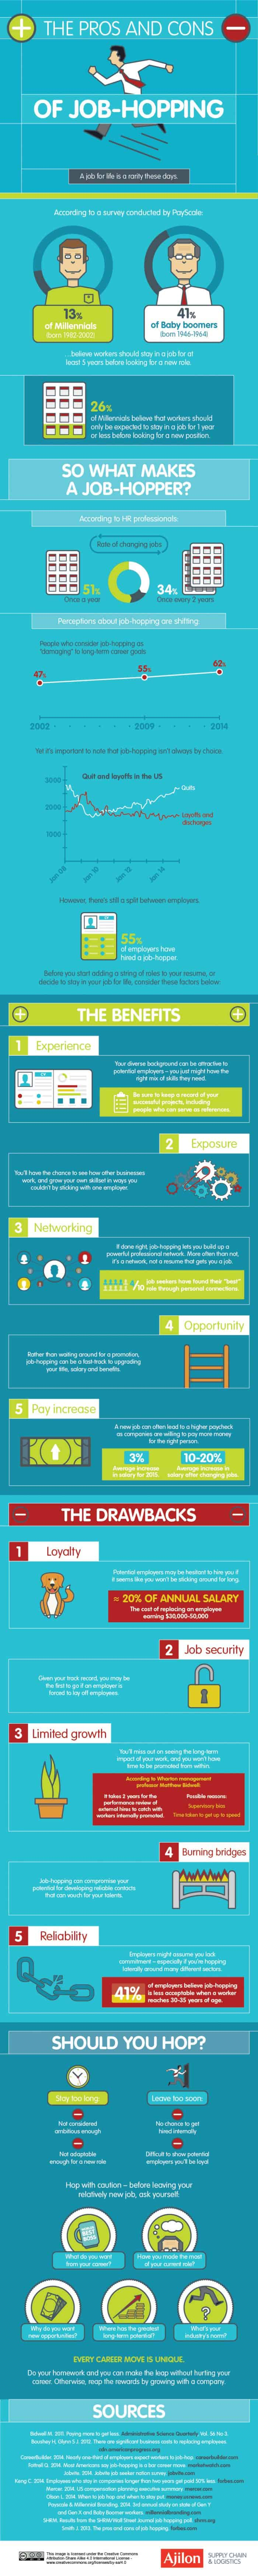 Pros and Cons of Job-Hopping Infographic